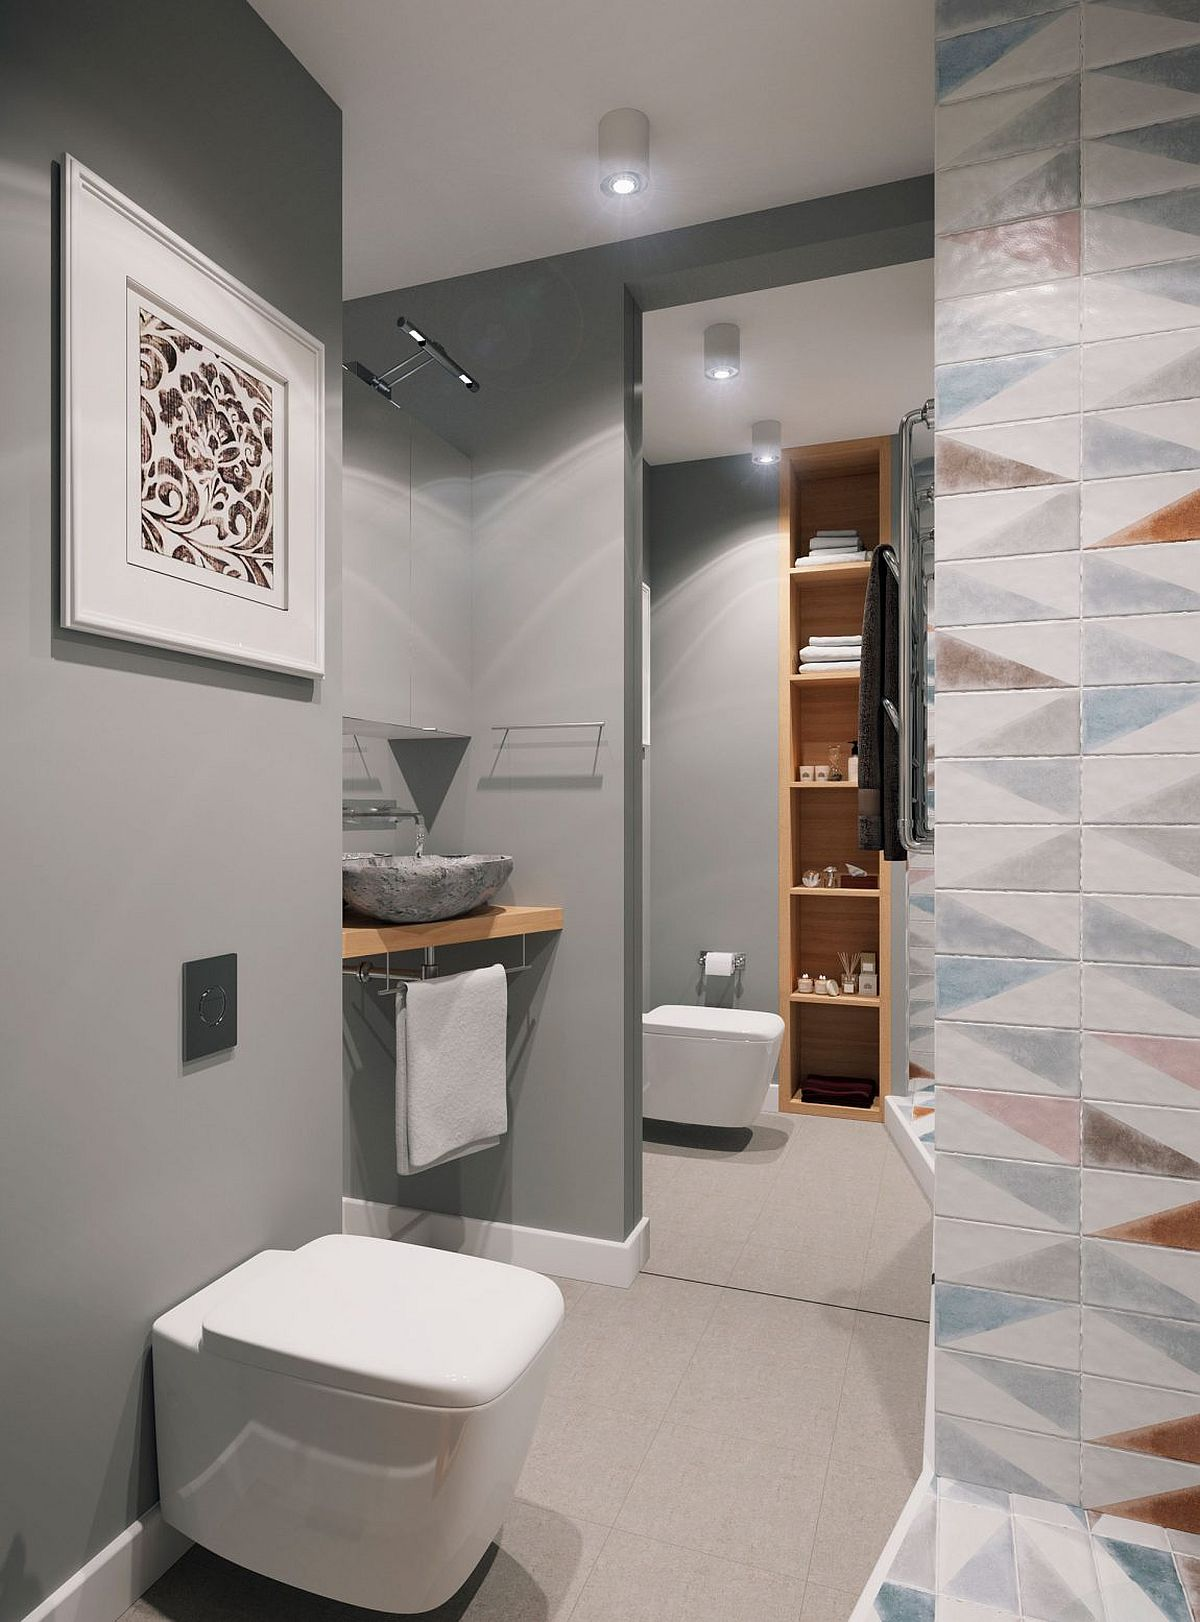 Bathroom in gray with shower area and tiny vanity